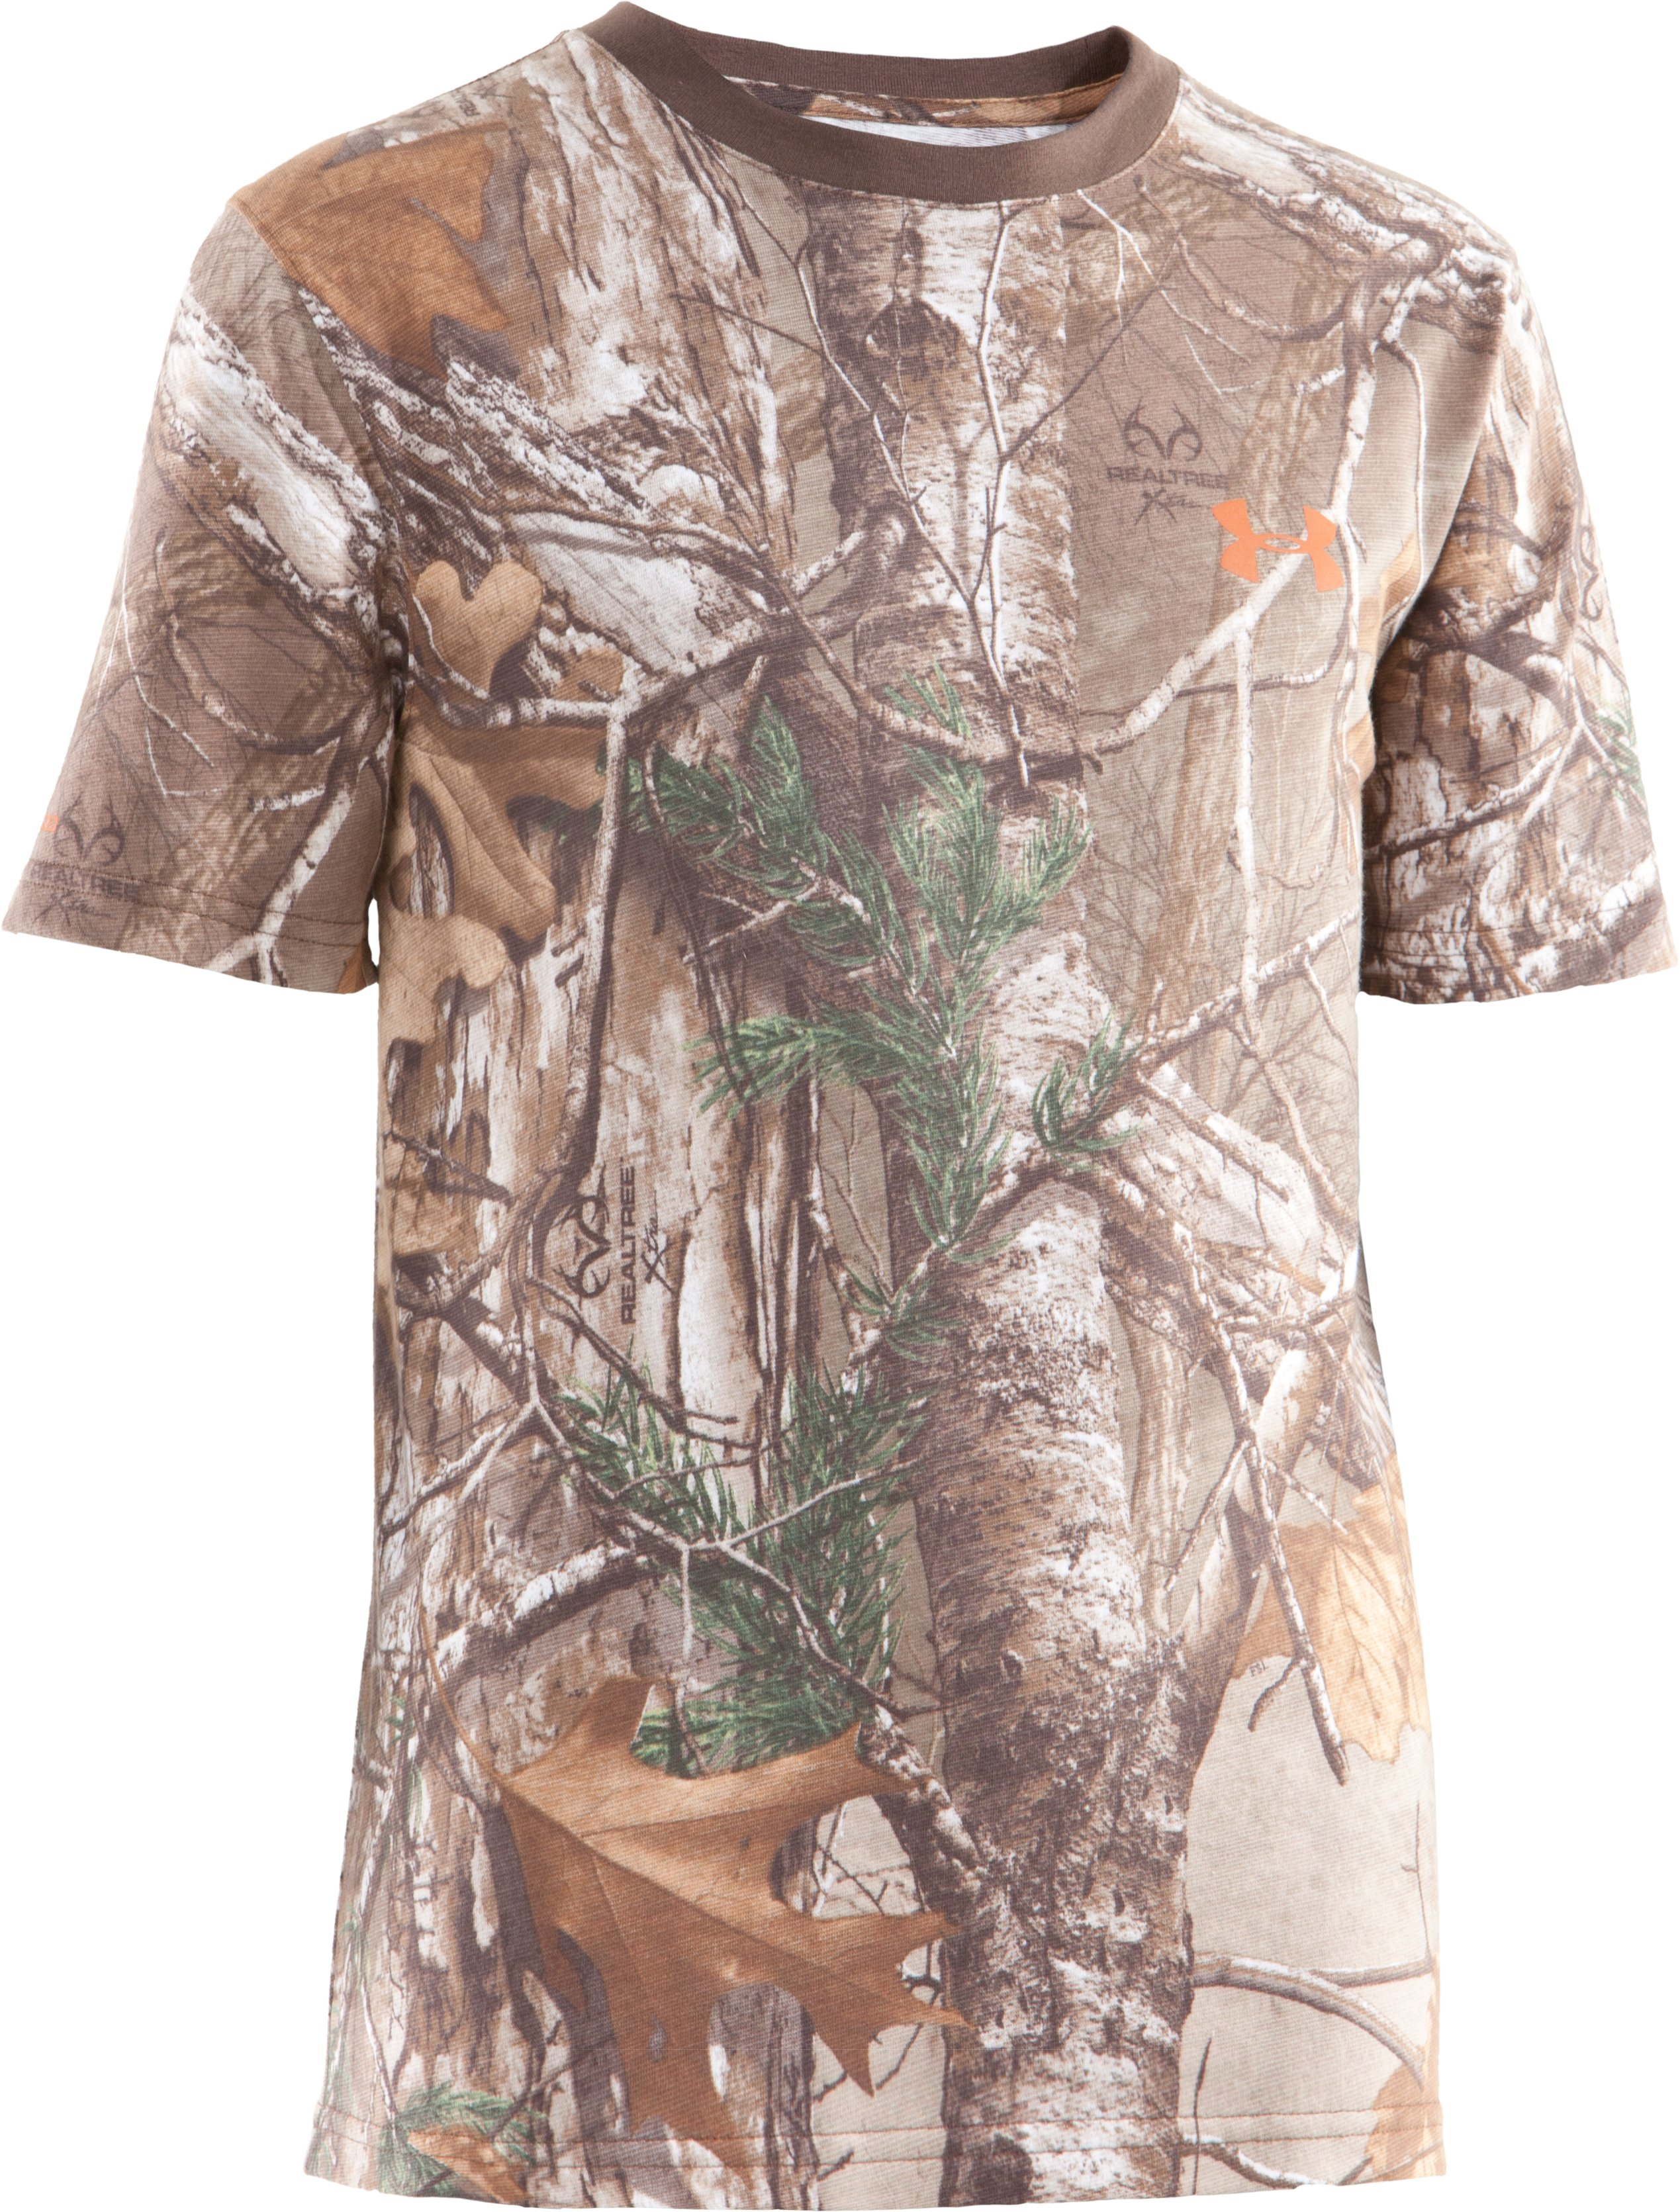 Boys' Charged Cotton® Camo Short Sleeve T-Shirt, REALTREE AP-XTRA